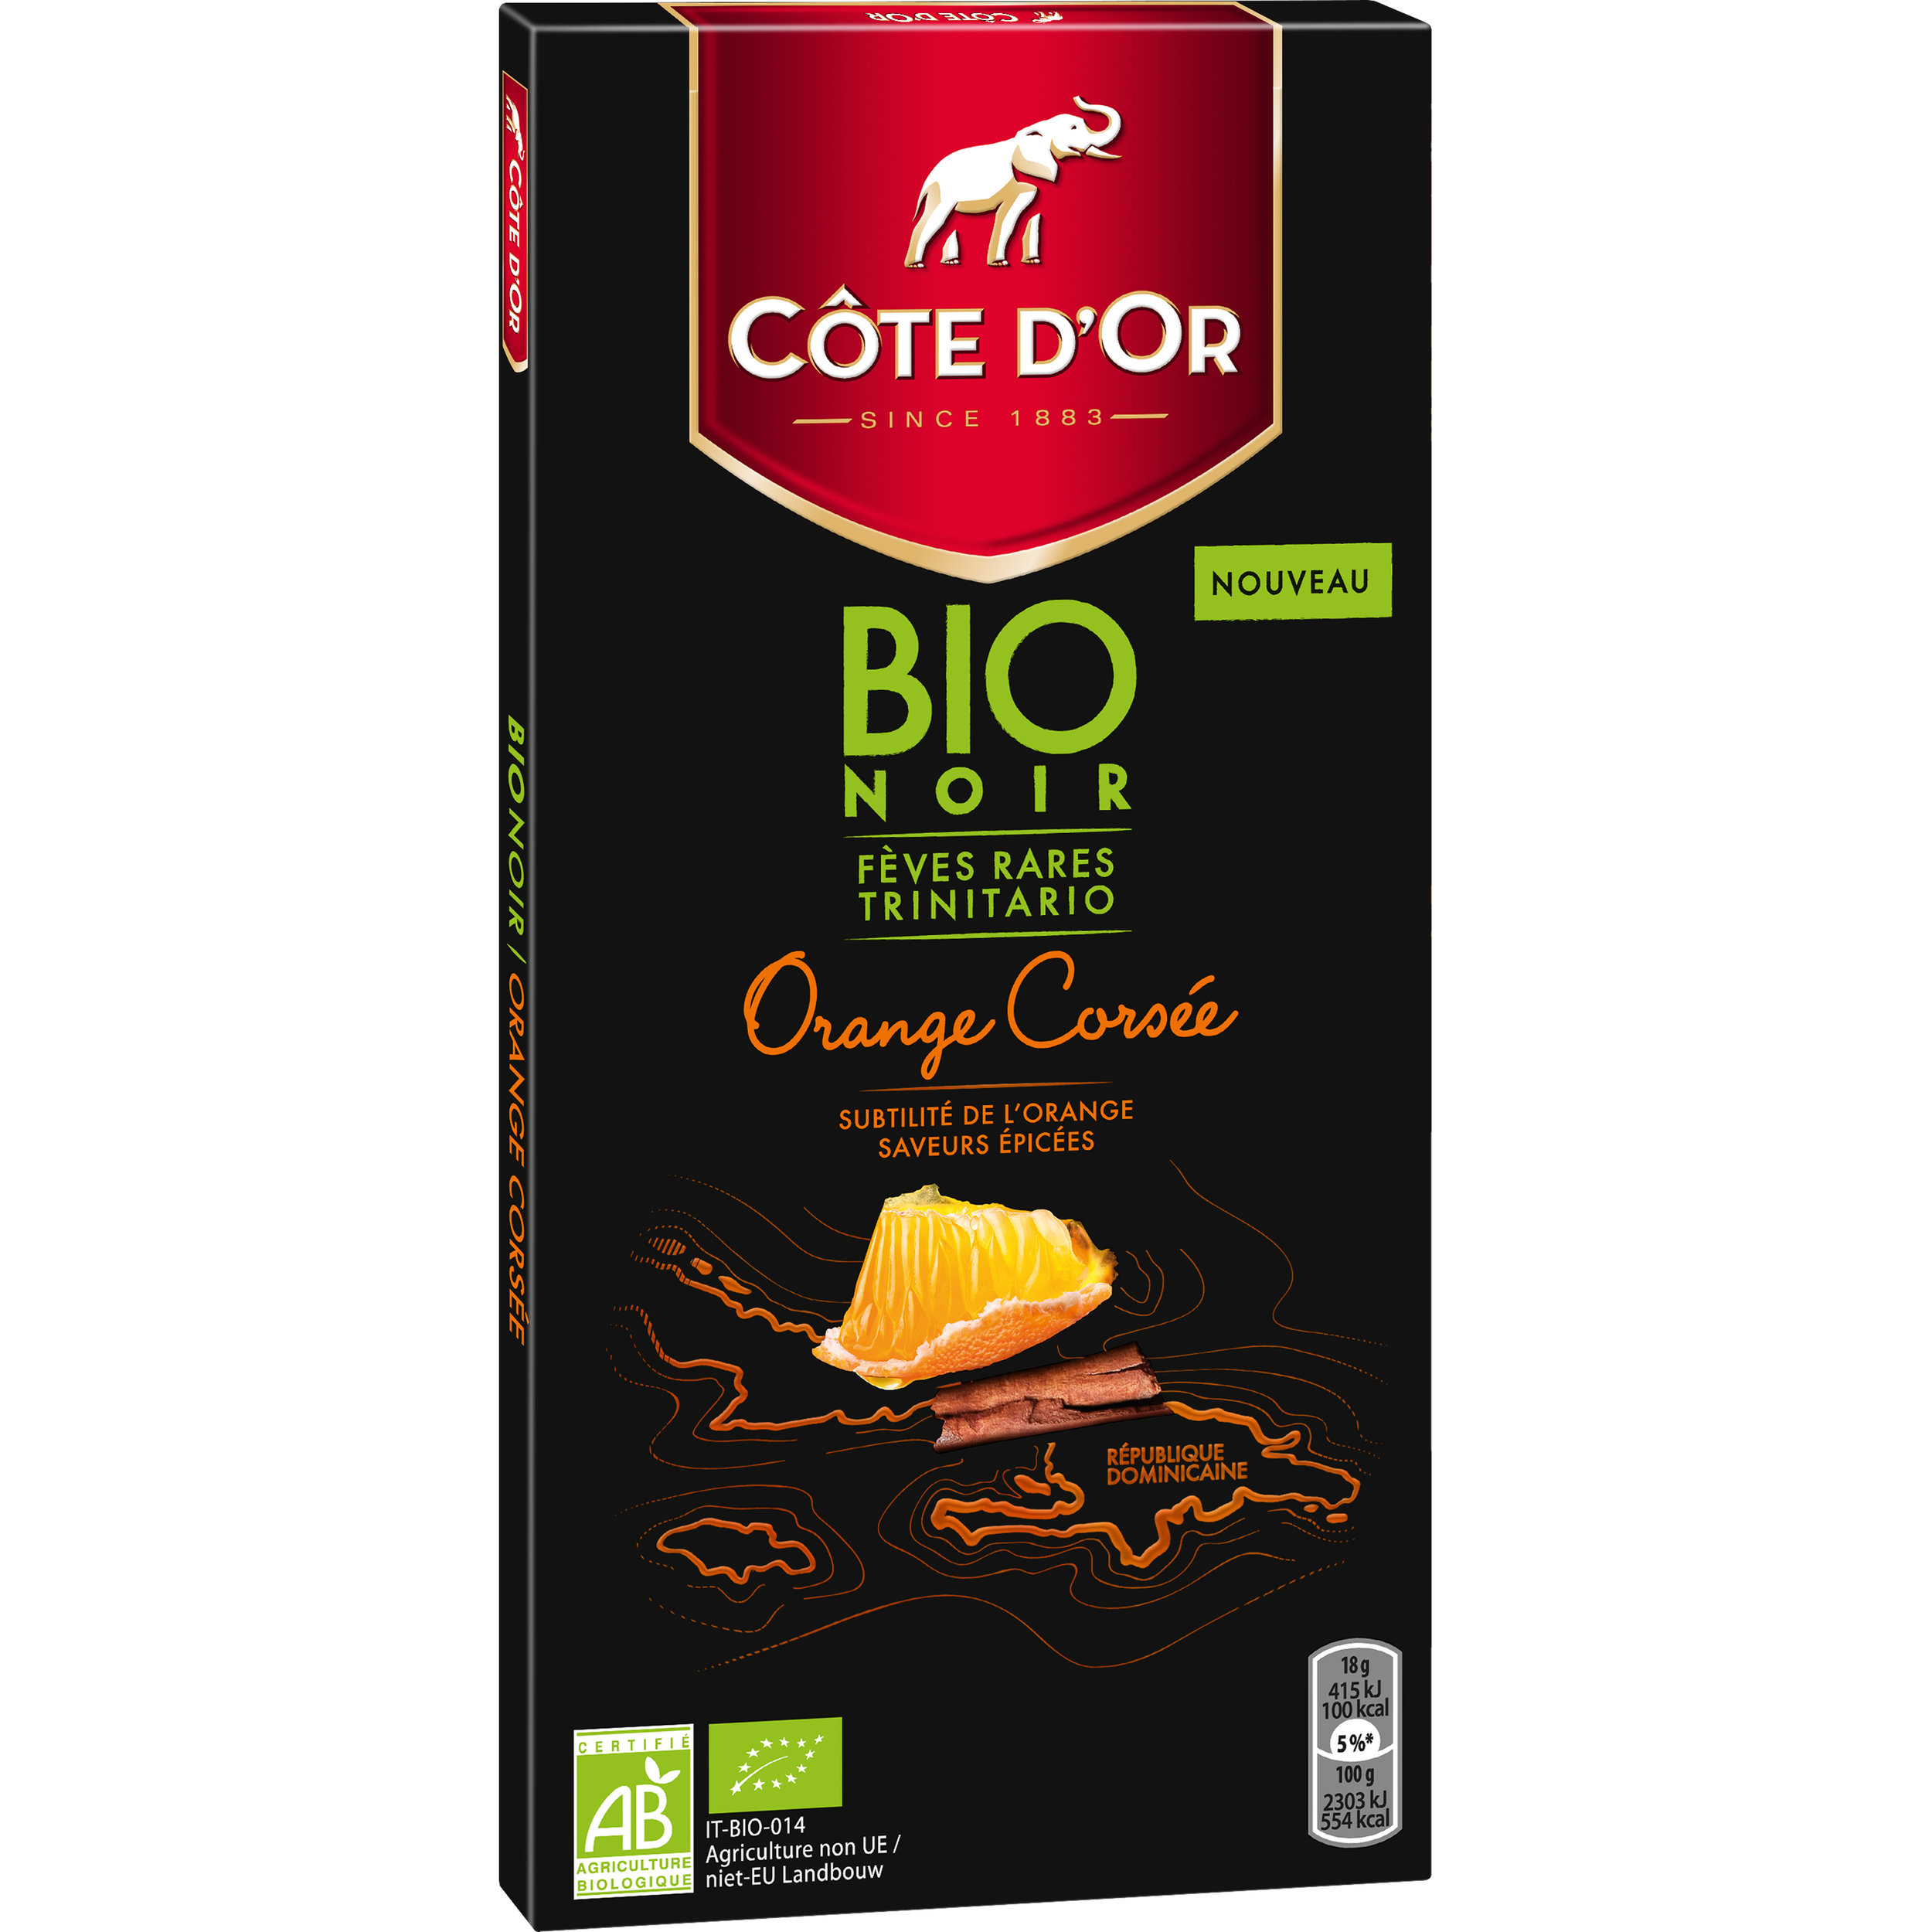 Côte d'Or BIO - Noir 60% Orange Corsée